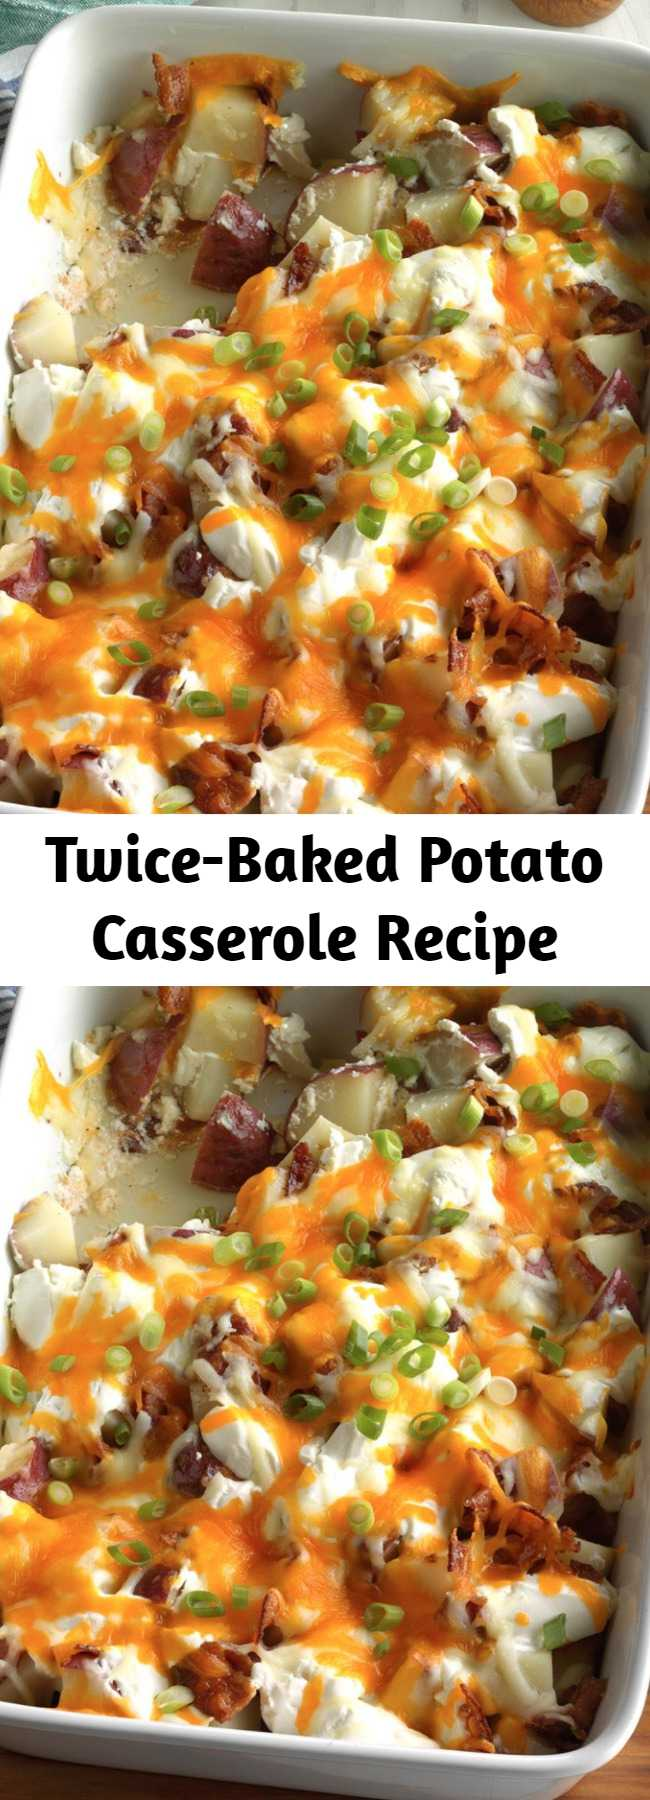 Twice-Baked Potato Casserole Recipe - My daughter gave me this twice-baked potatoes recipe because she knows I love potatoes. The hearty casserole is loaded with a palate-pleasing combination of bacon, cheeses, green onions and sour cream.